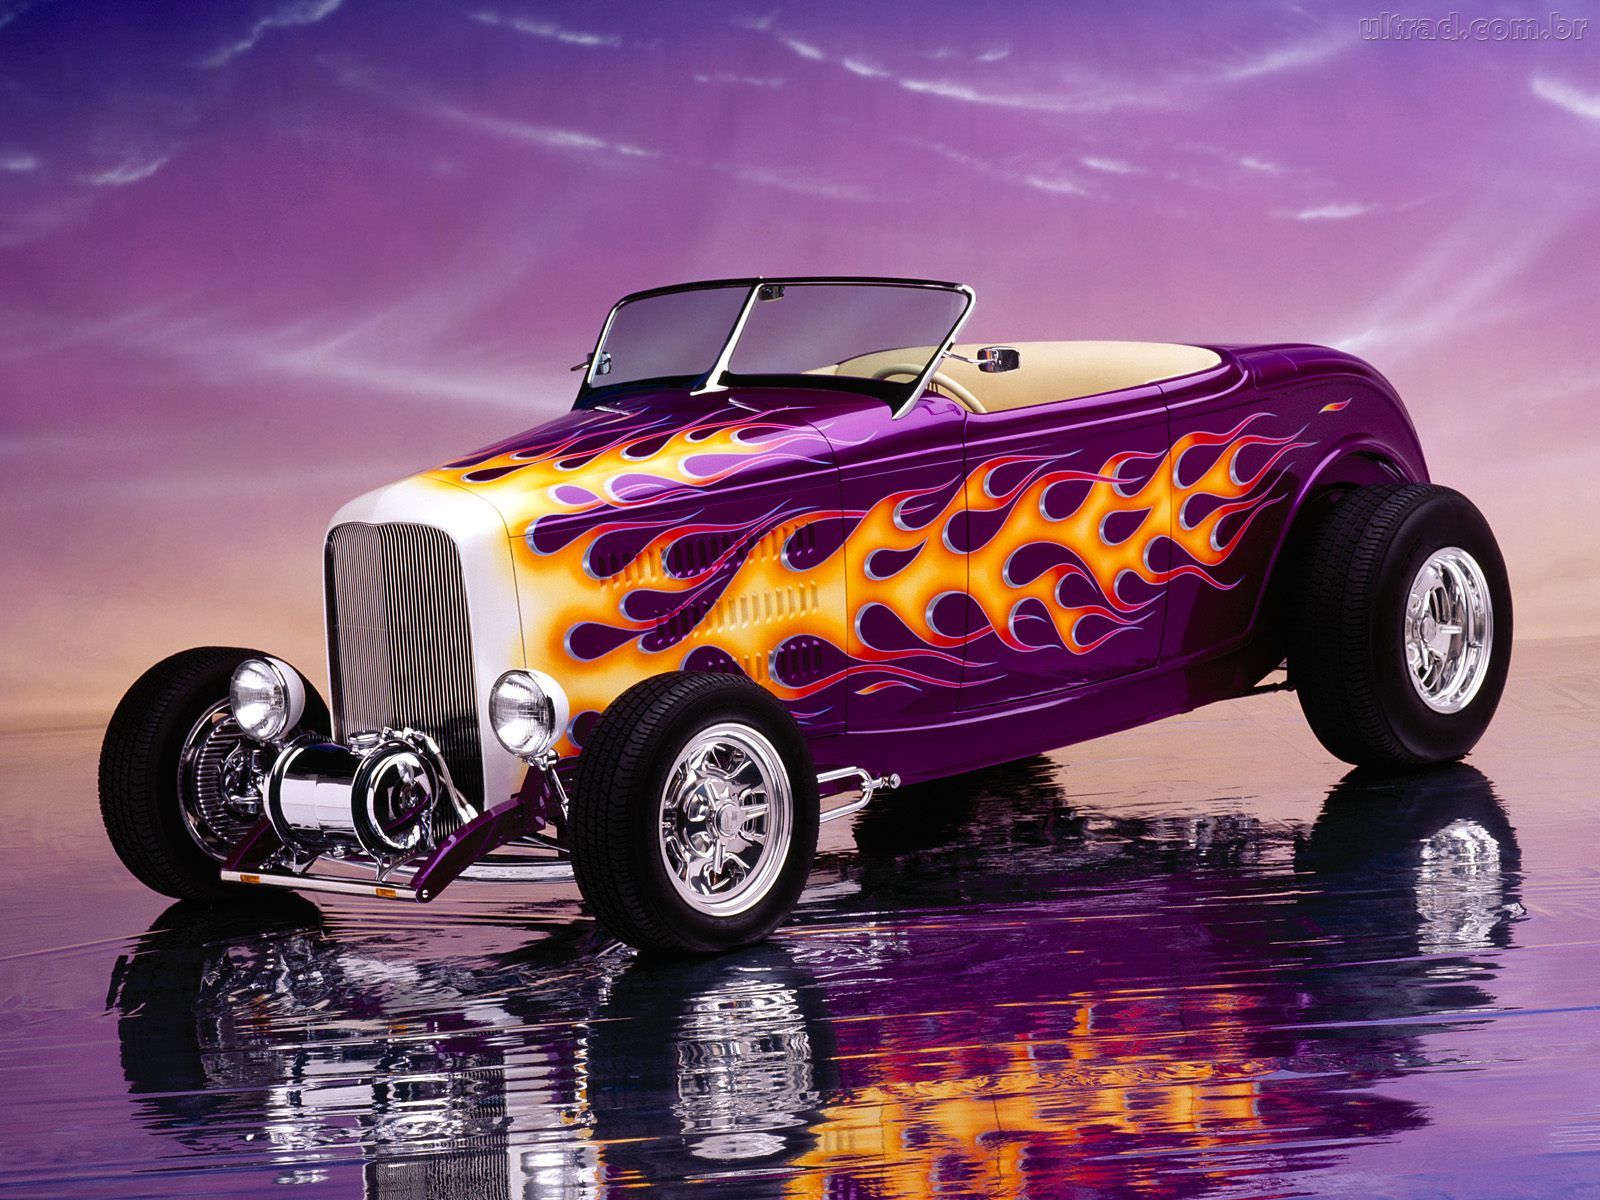 mais buscados wallpaper hot rod papel de parede carros hot rod hot rod 1600x1200